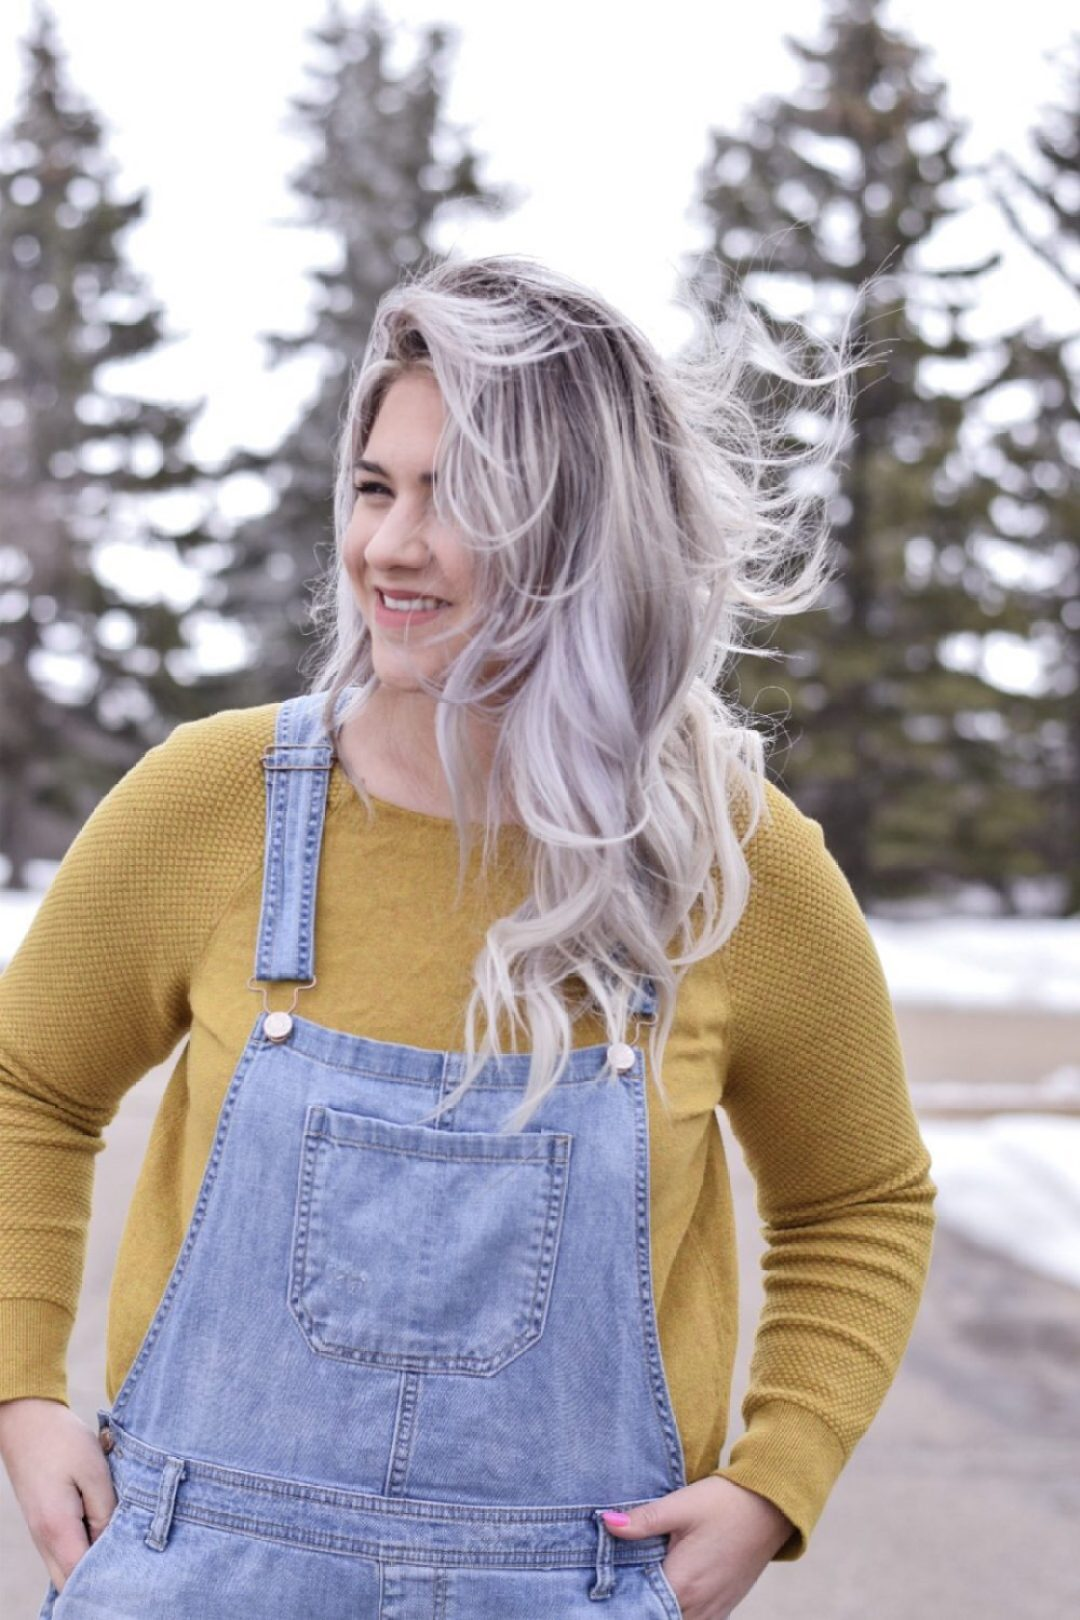 Overalls in early spring